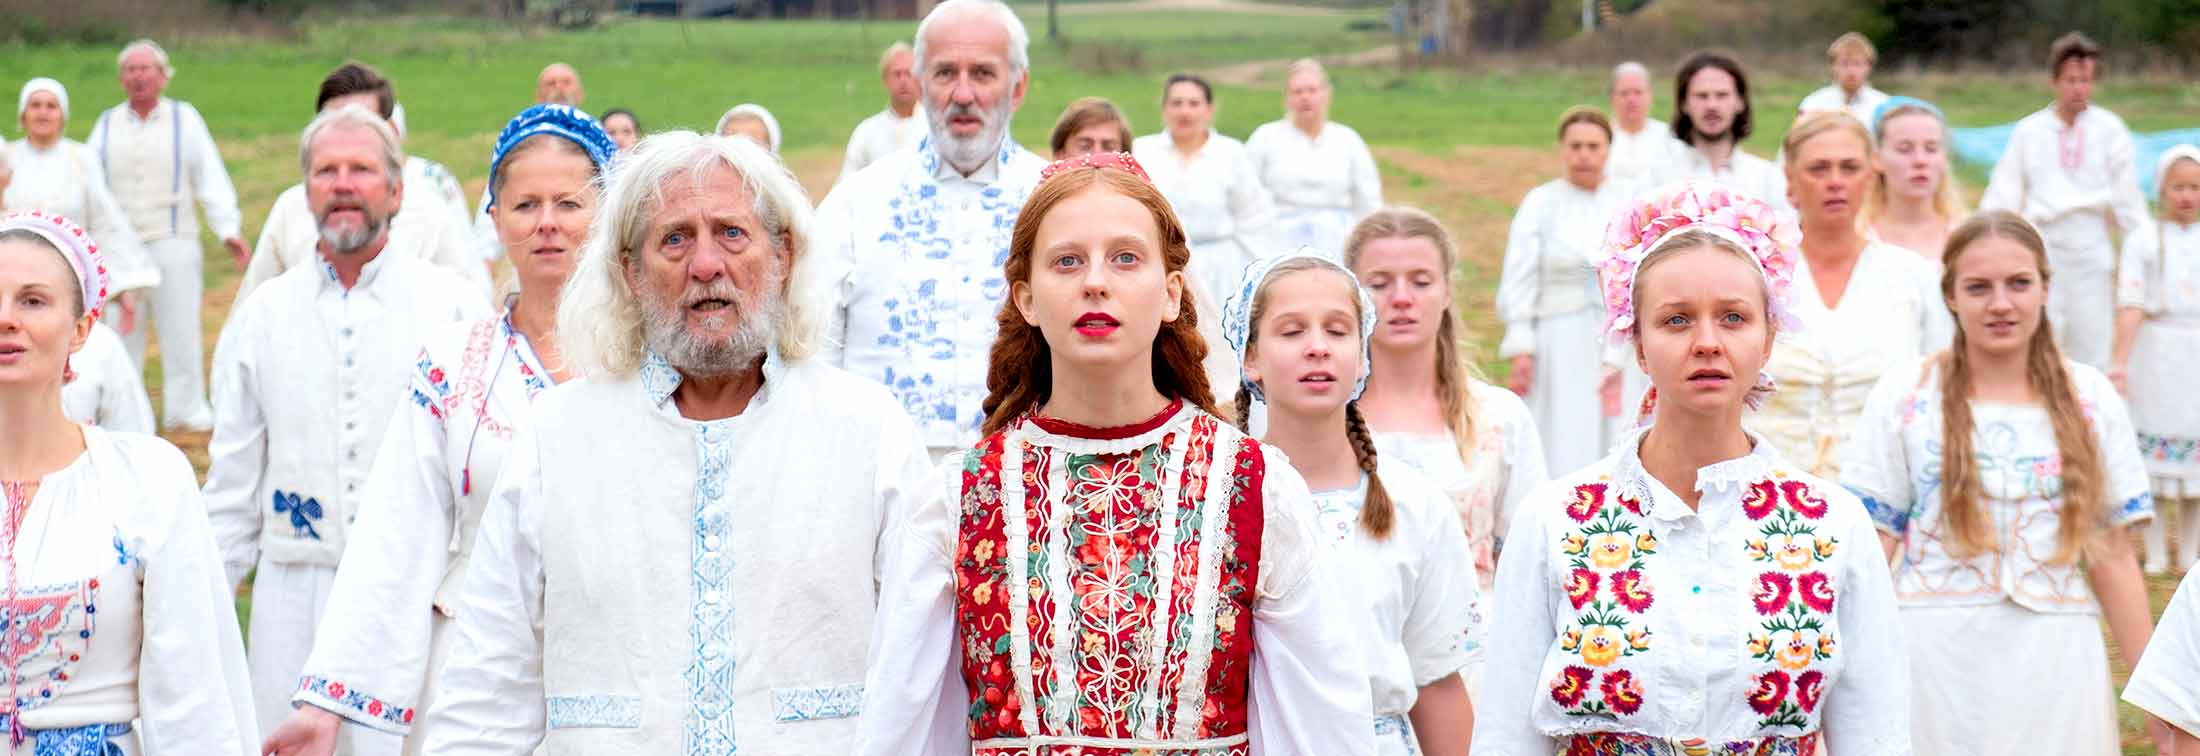 Midsommar - Ari Aster brings the gore but lacks the emotion